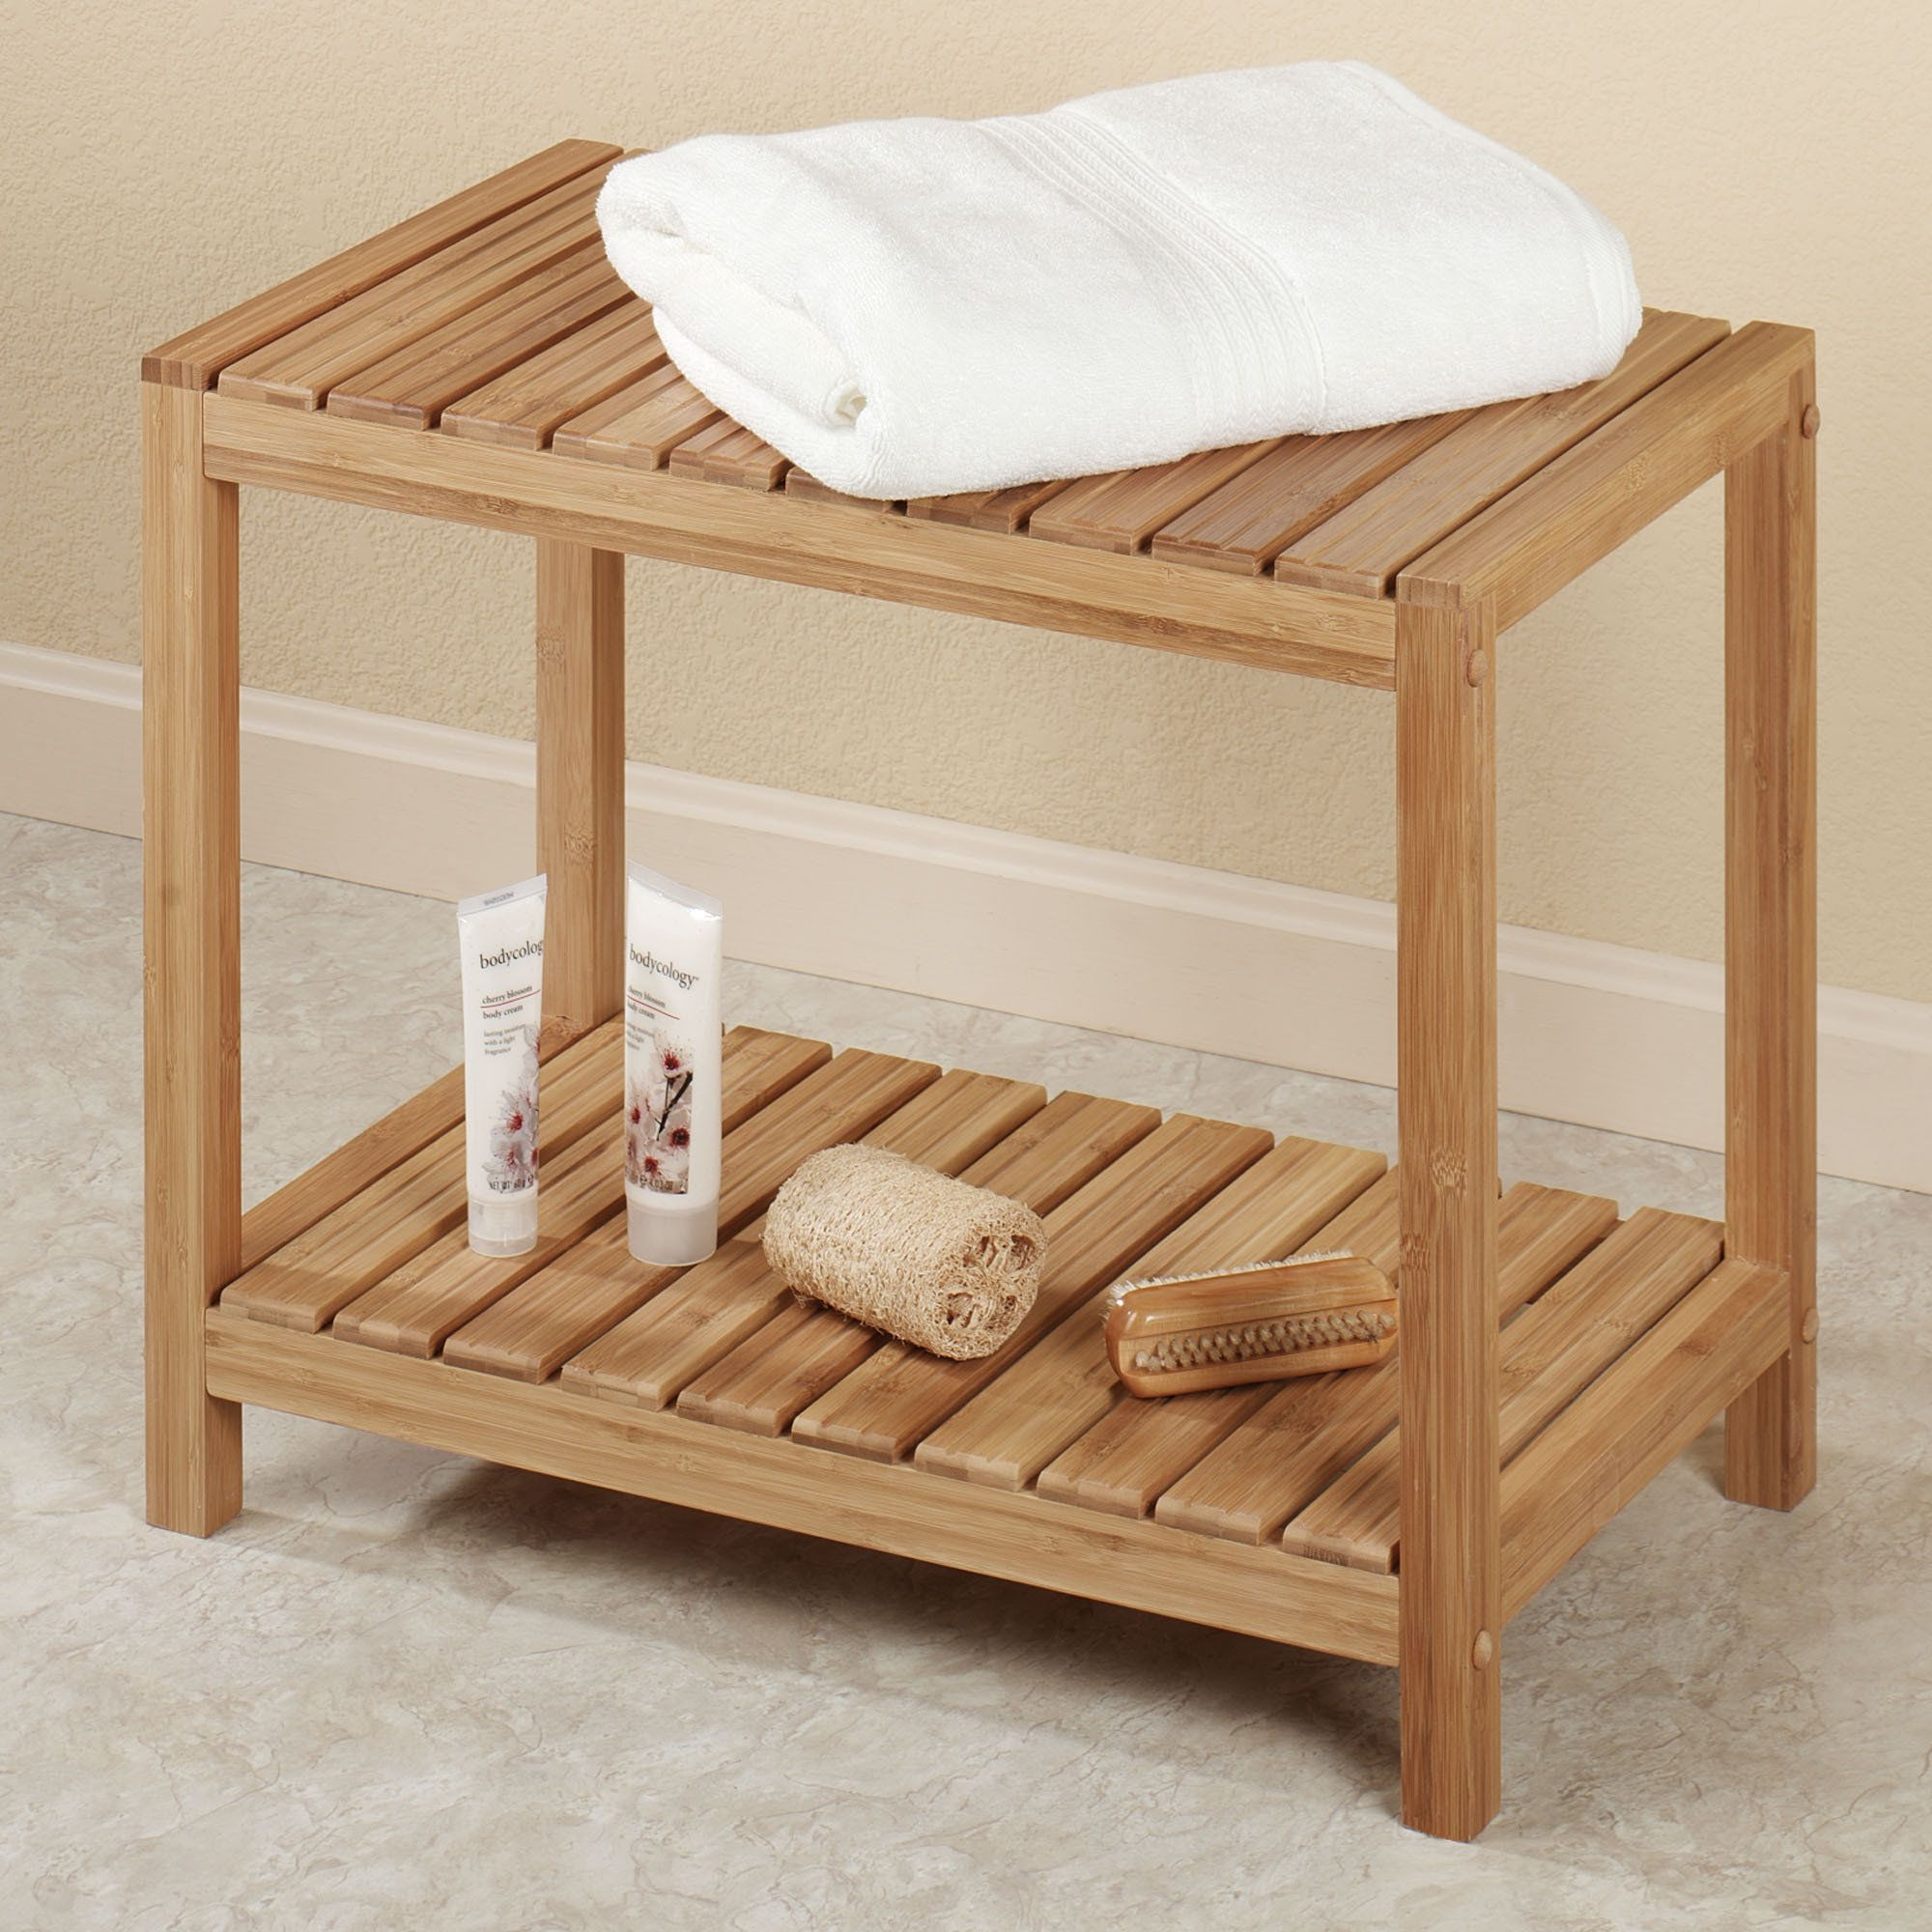 Bathroom Bench bamboo spa bench: for our spa bathroom | time to redecorate